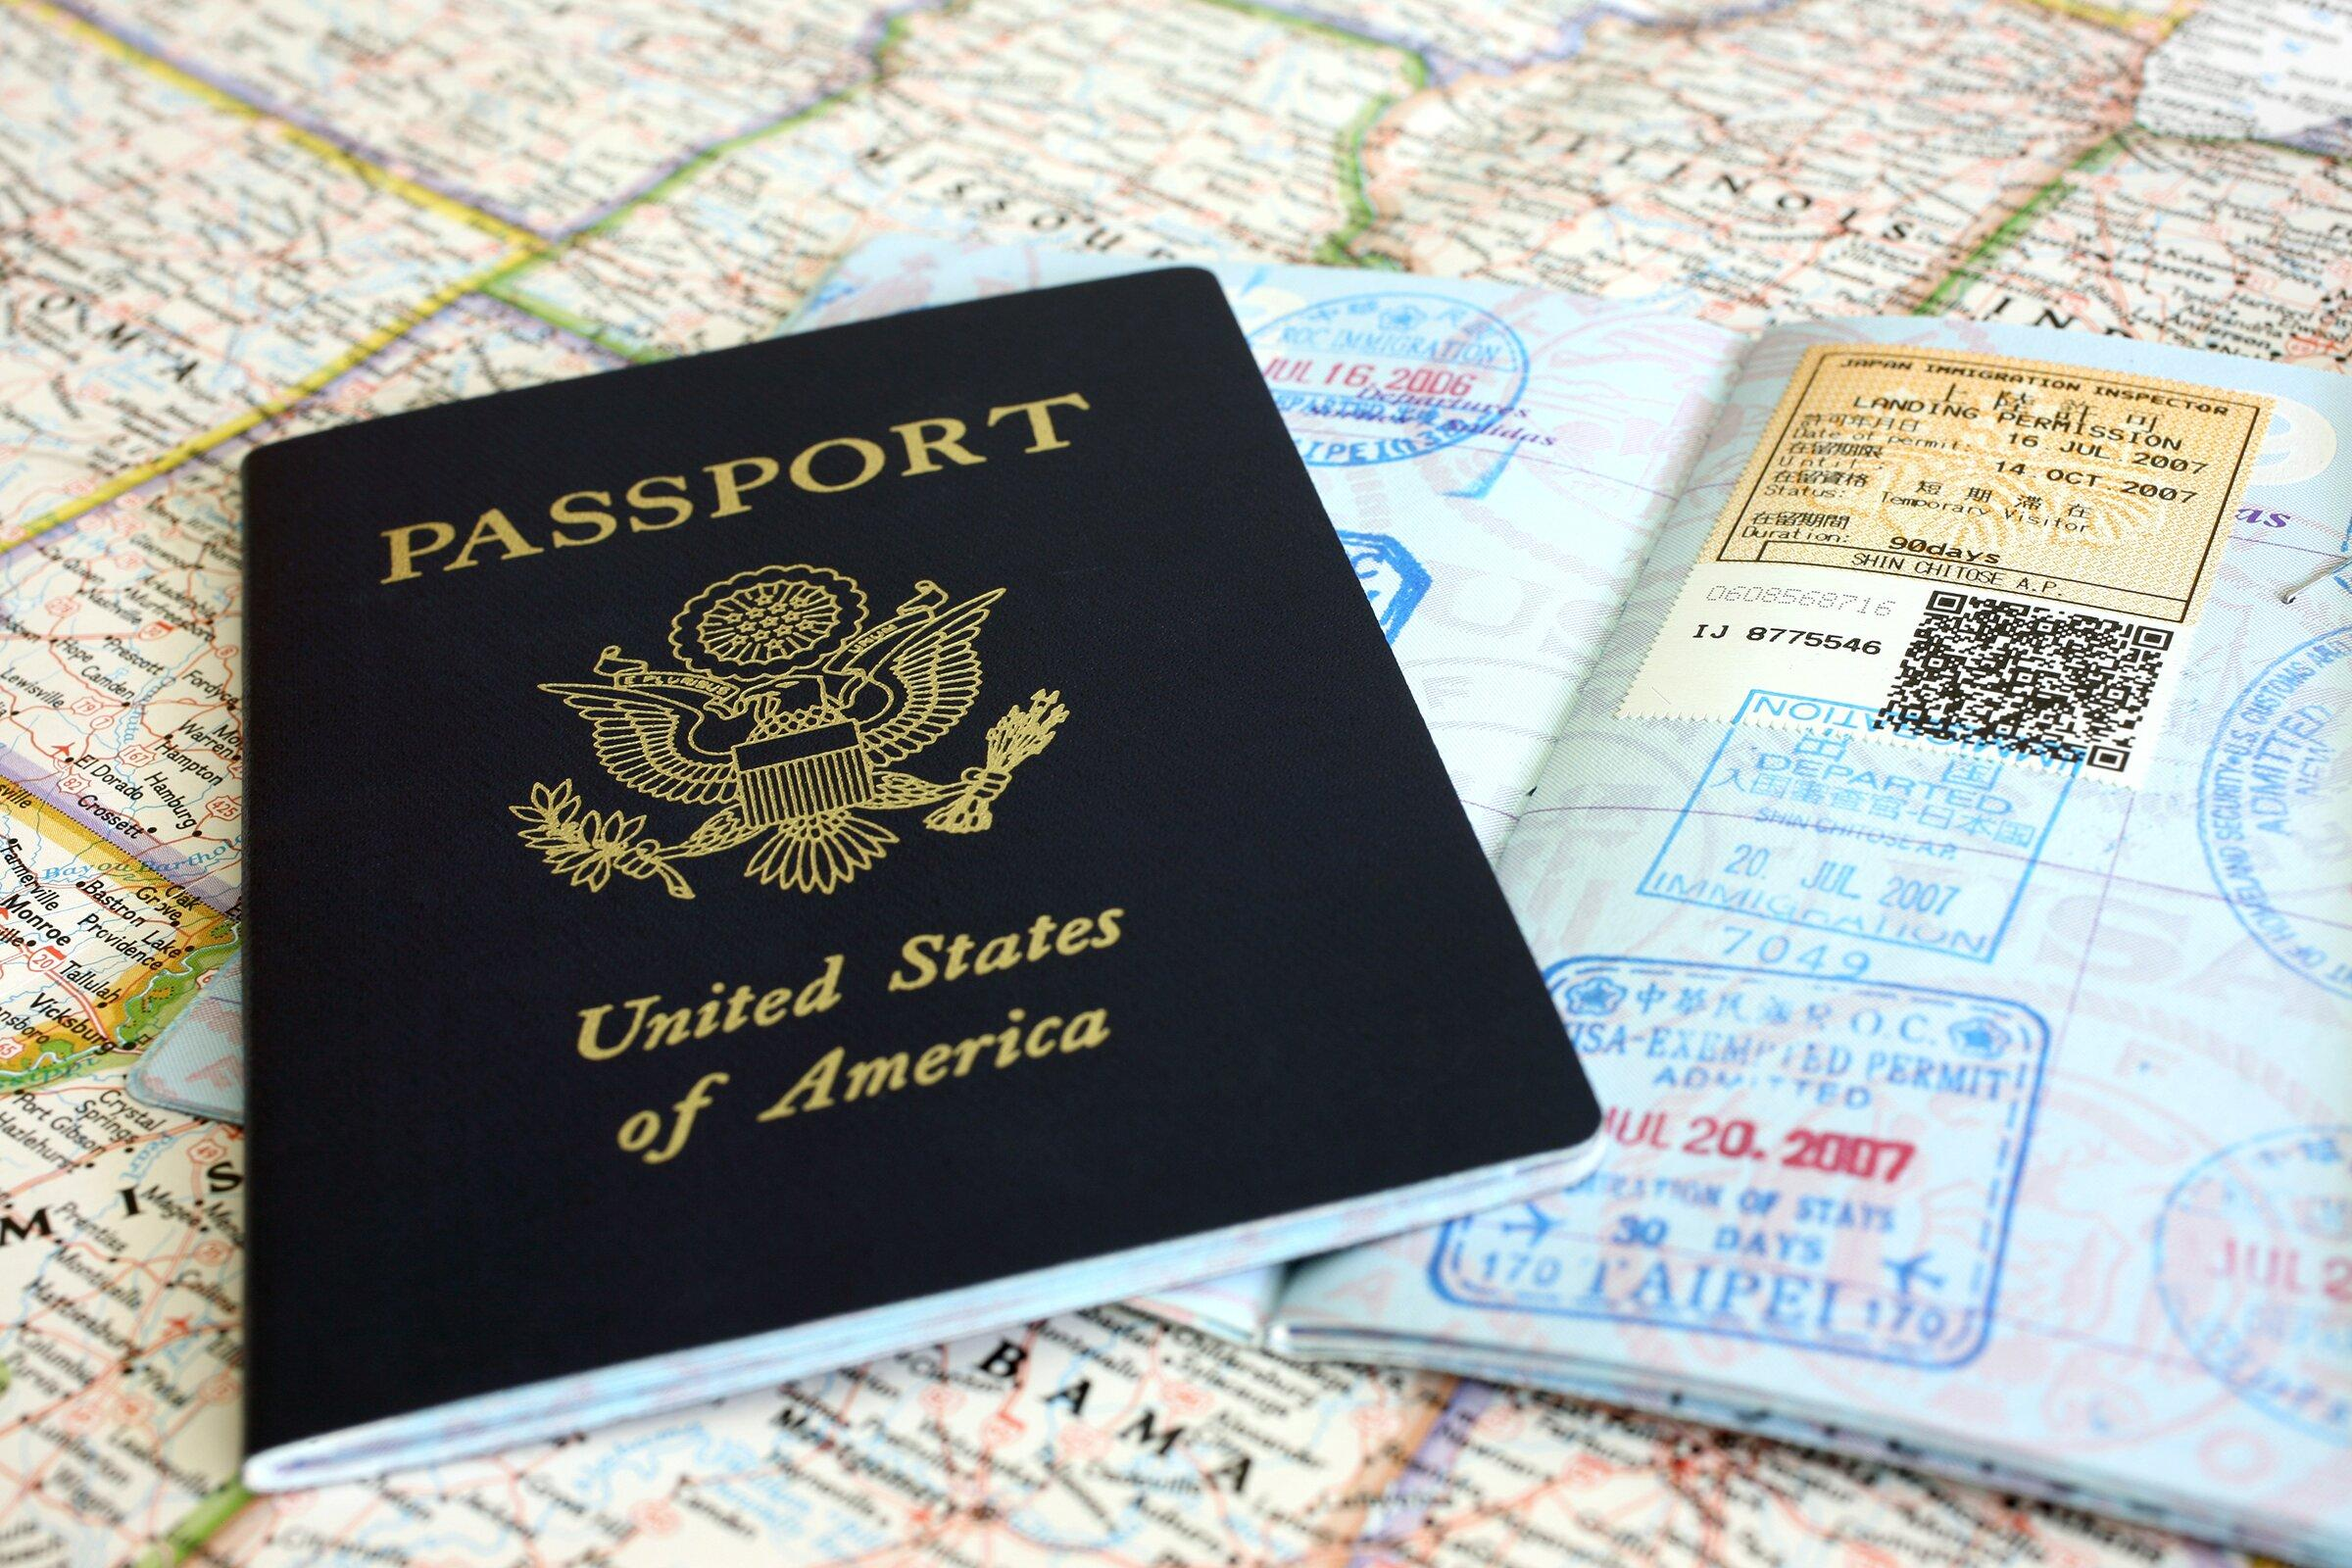 US imposes visa rules to restrict